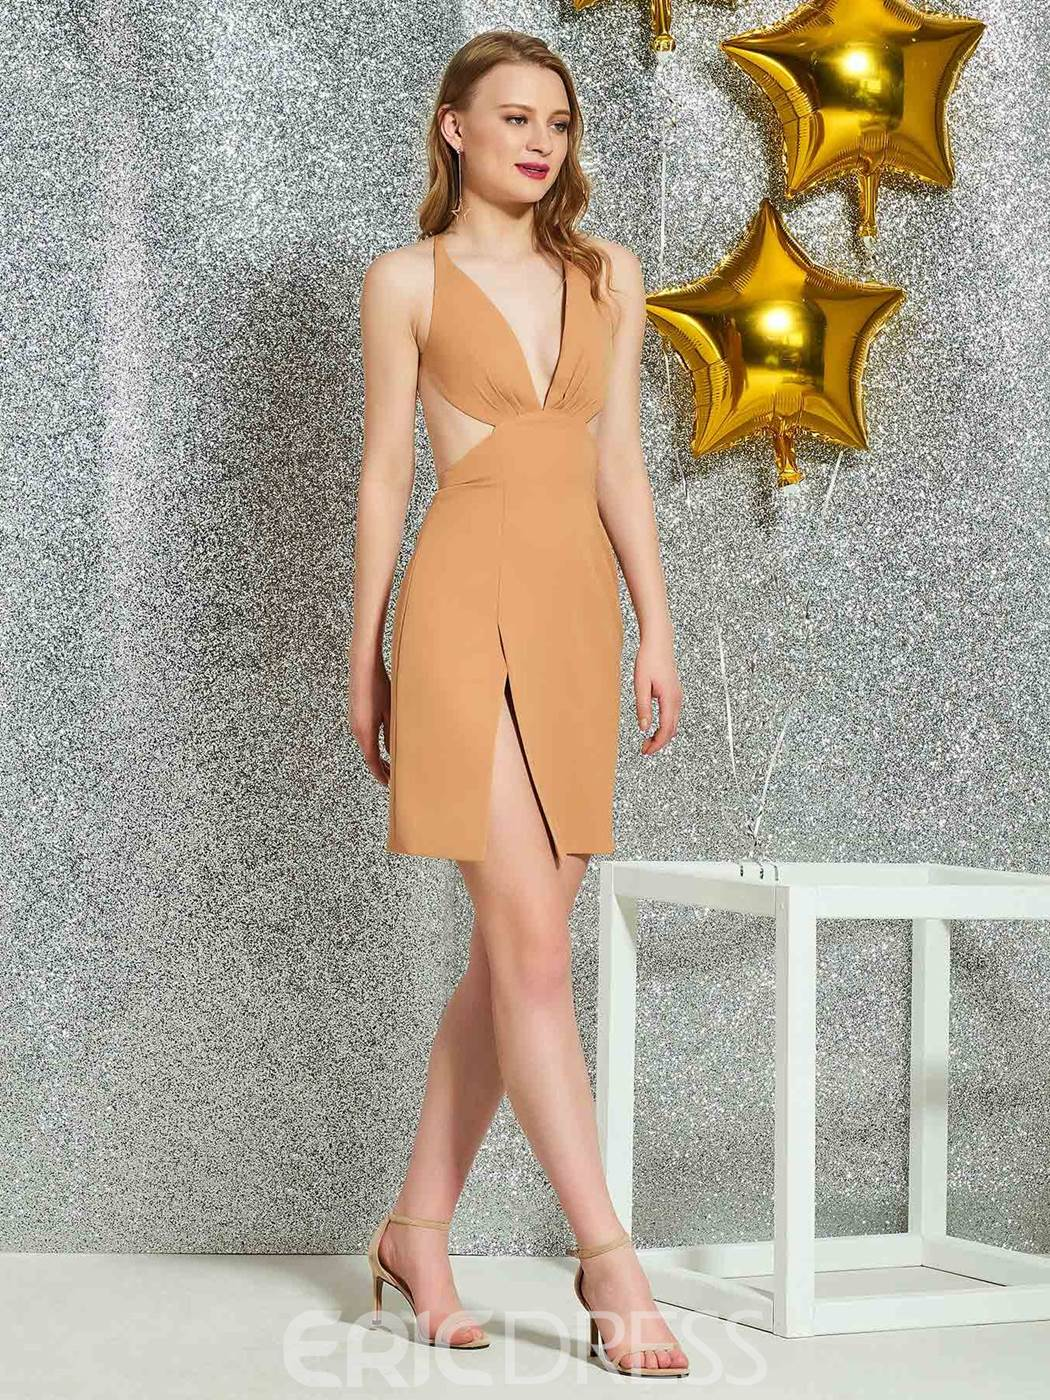 Ericdress V-Neck Sheath Backless Cocktail Dress 2019